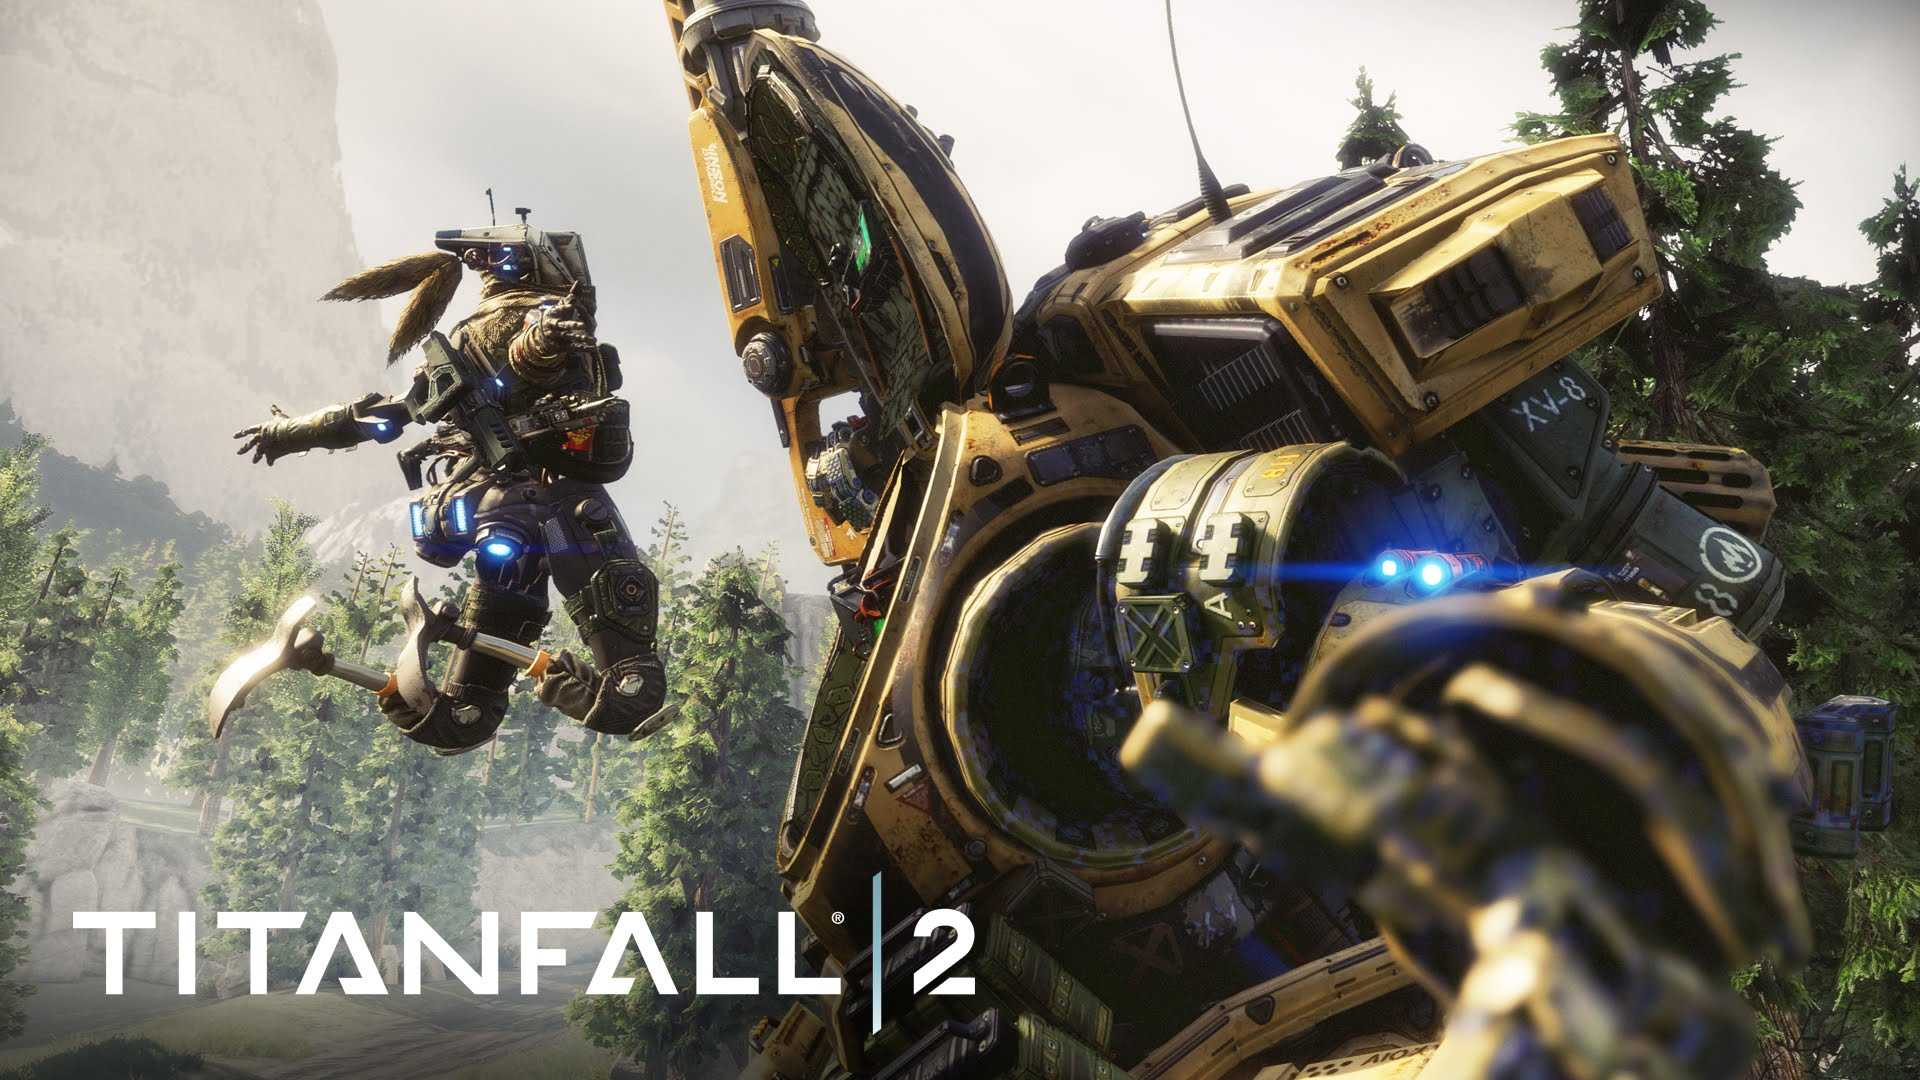 Titanfall's mobile spinoff will be a free-to-play card game